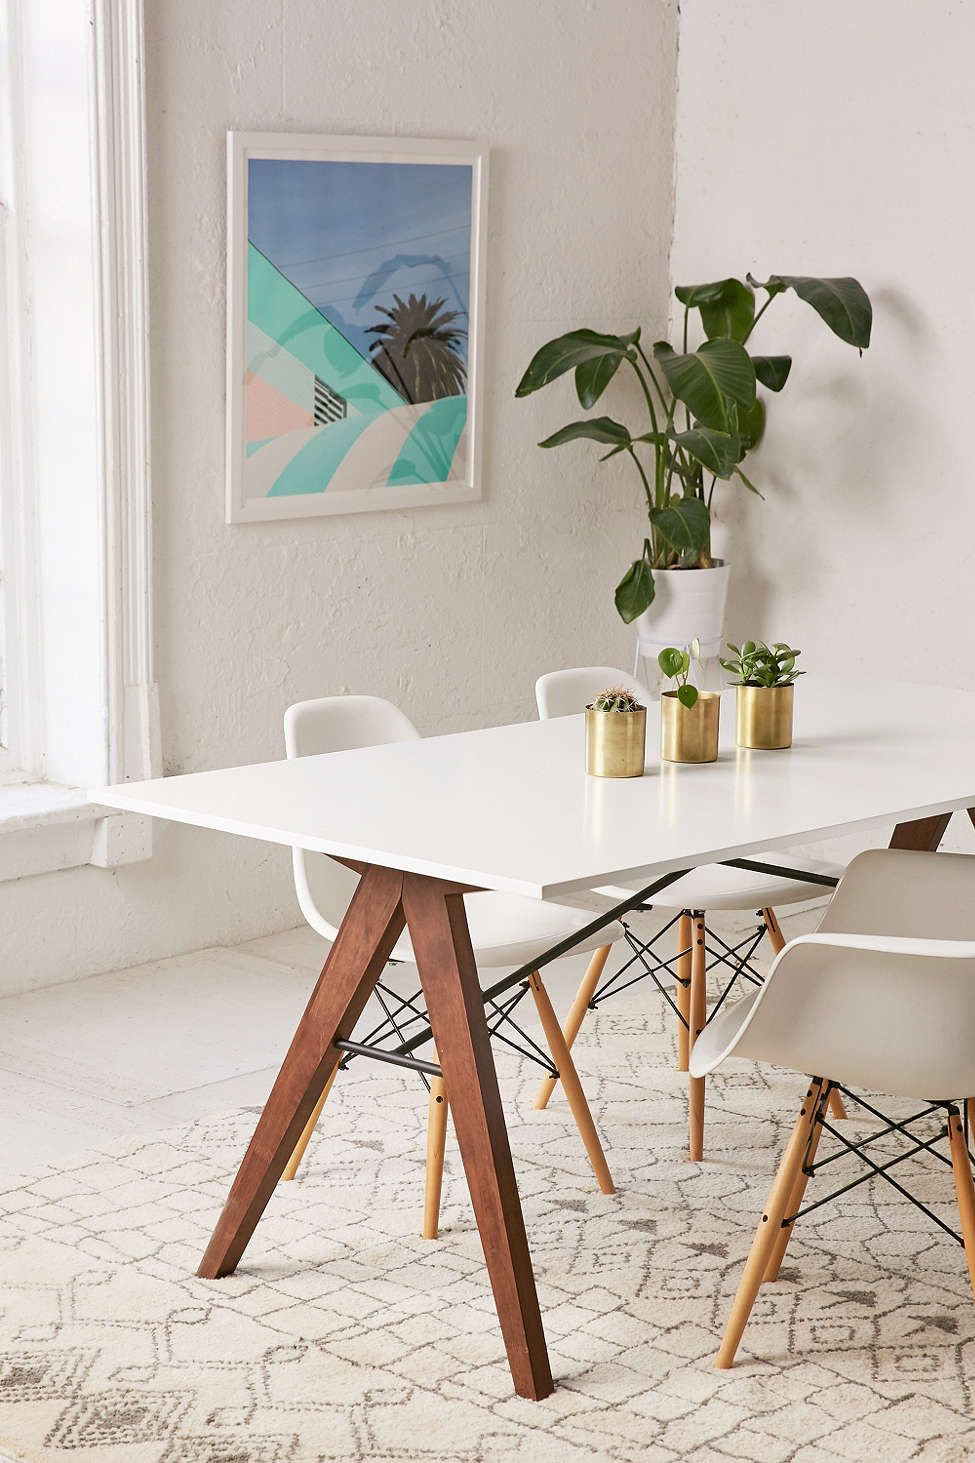 The Saints Dining Table is a sleek